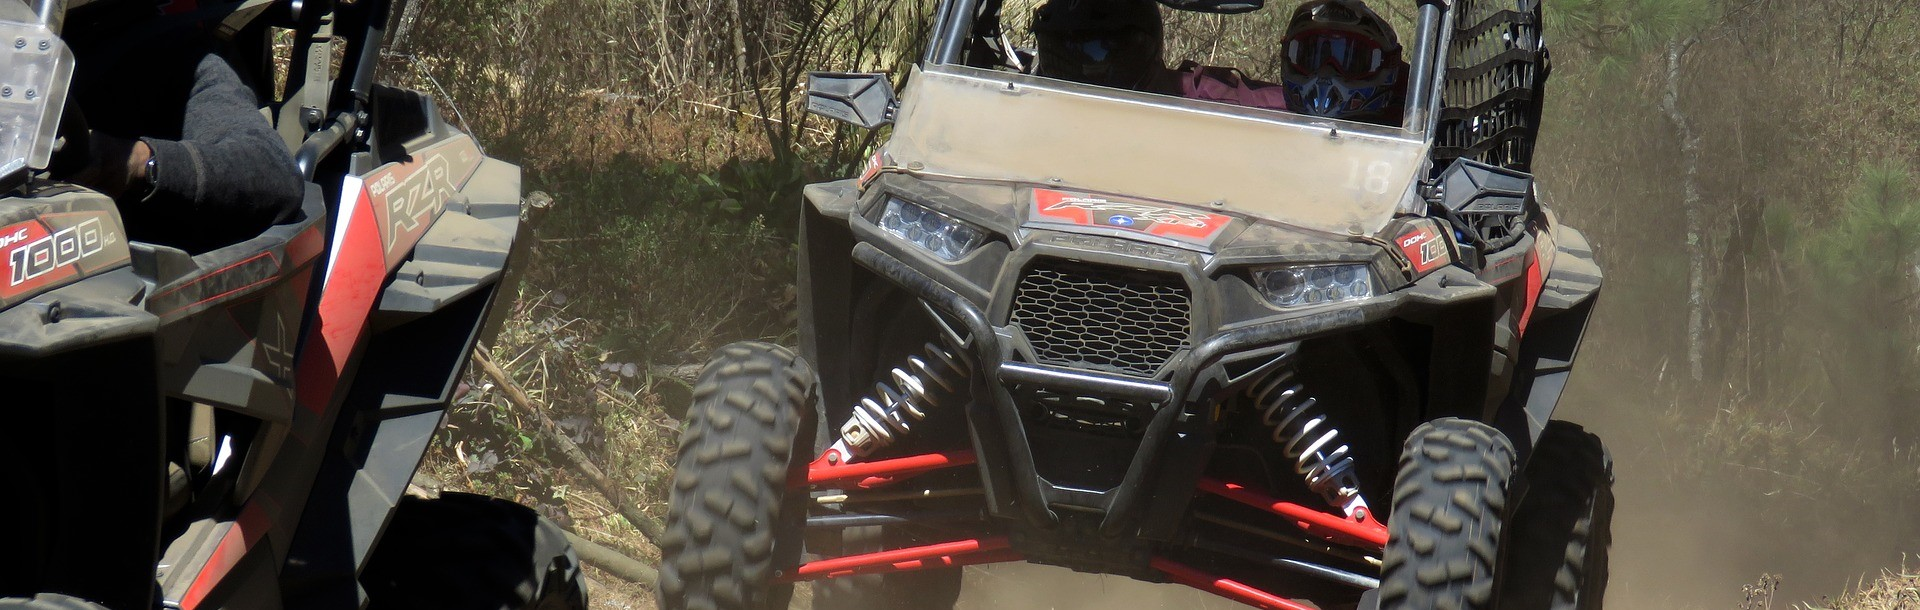 Off Road Ride in Sarasota, Florida | Breast Cancer Car Donations